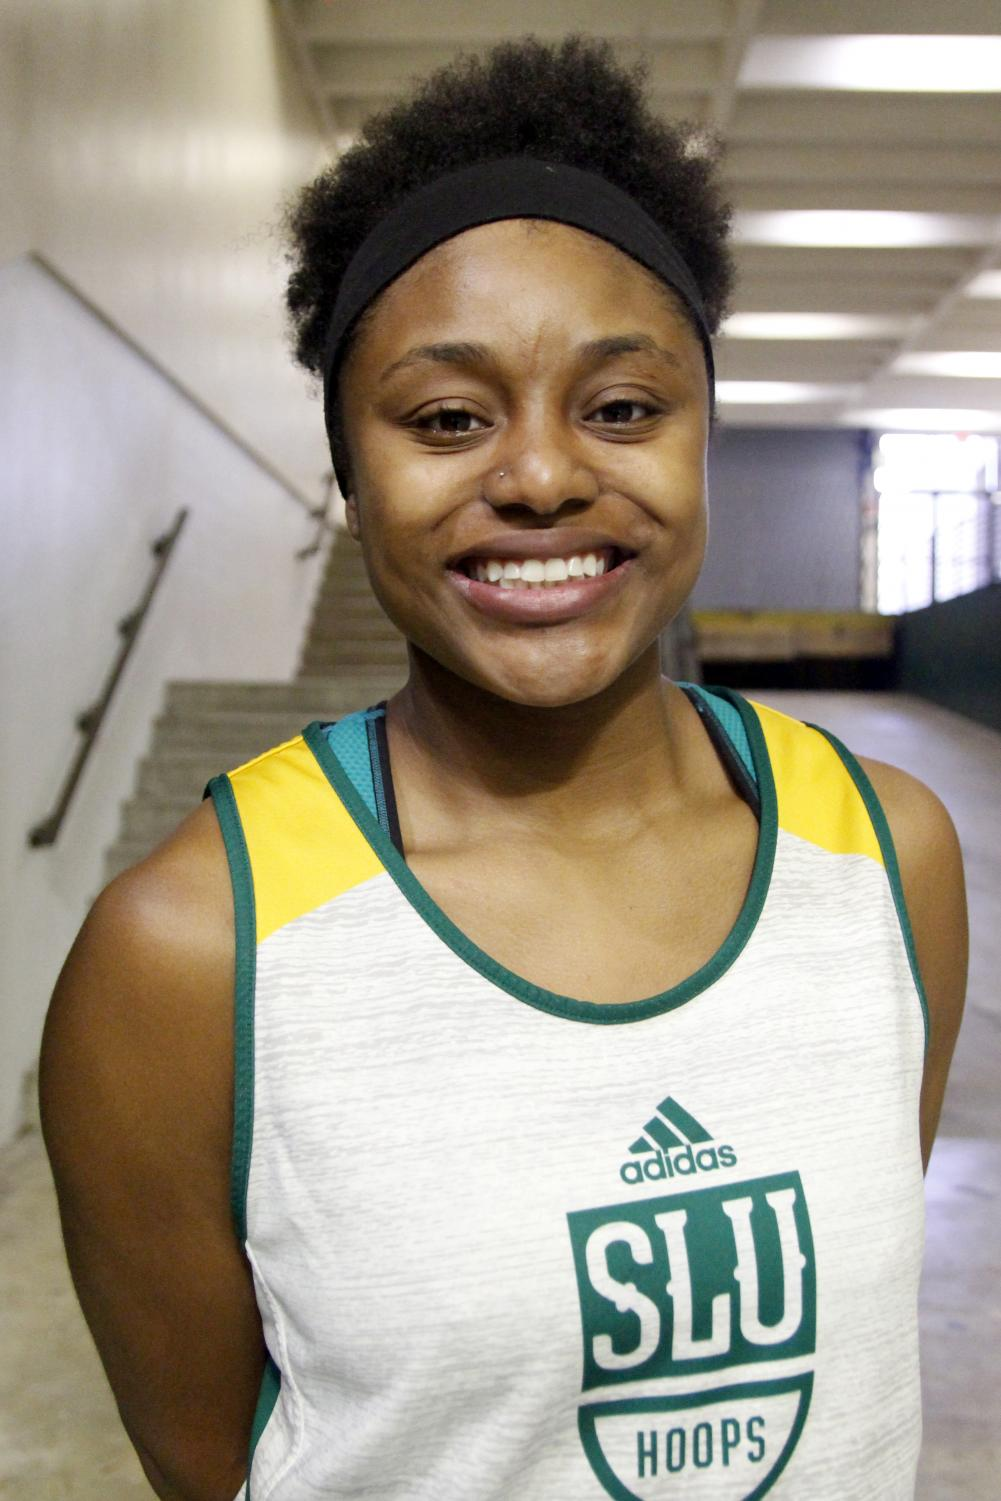 Charliee Dugas, a guard for the university basketball team, enters her fourth season with the team. Dugas anticipates playing professionally after she graduates. Elana Guillory/The Lion's Roar